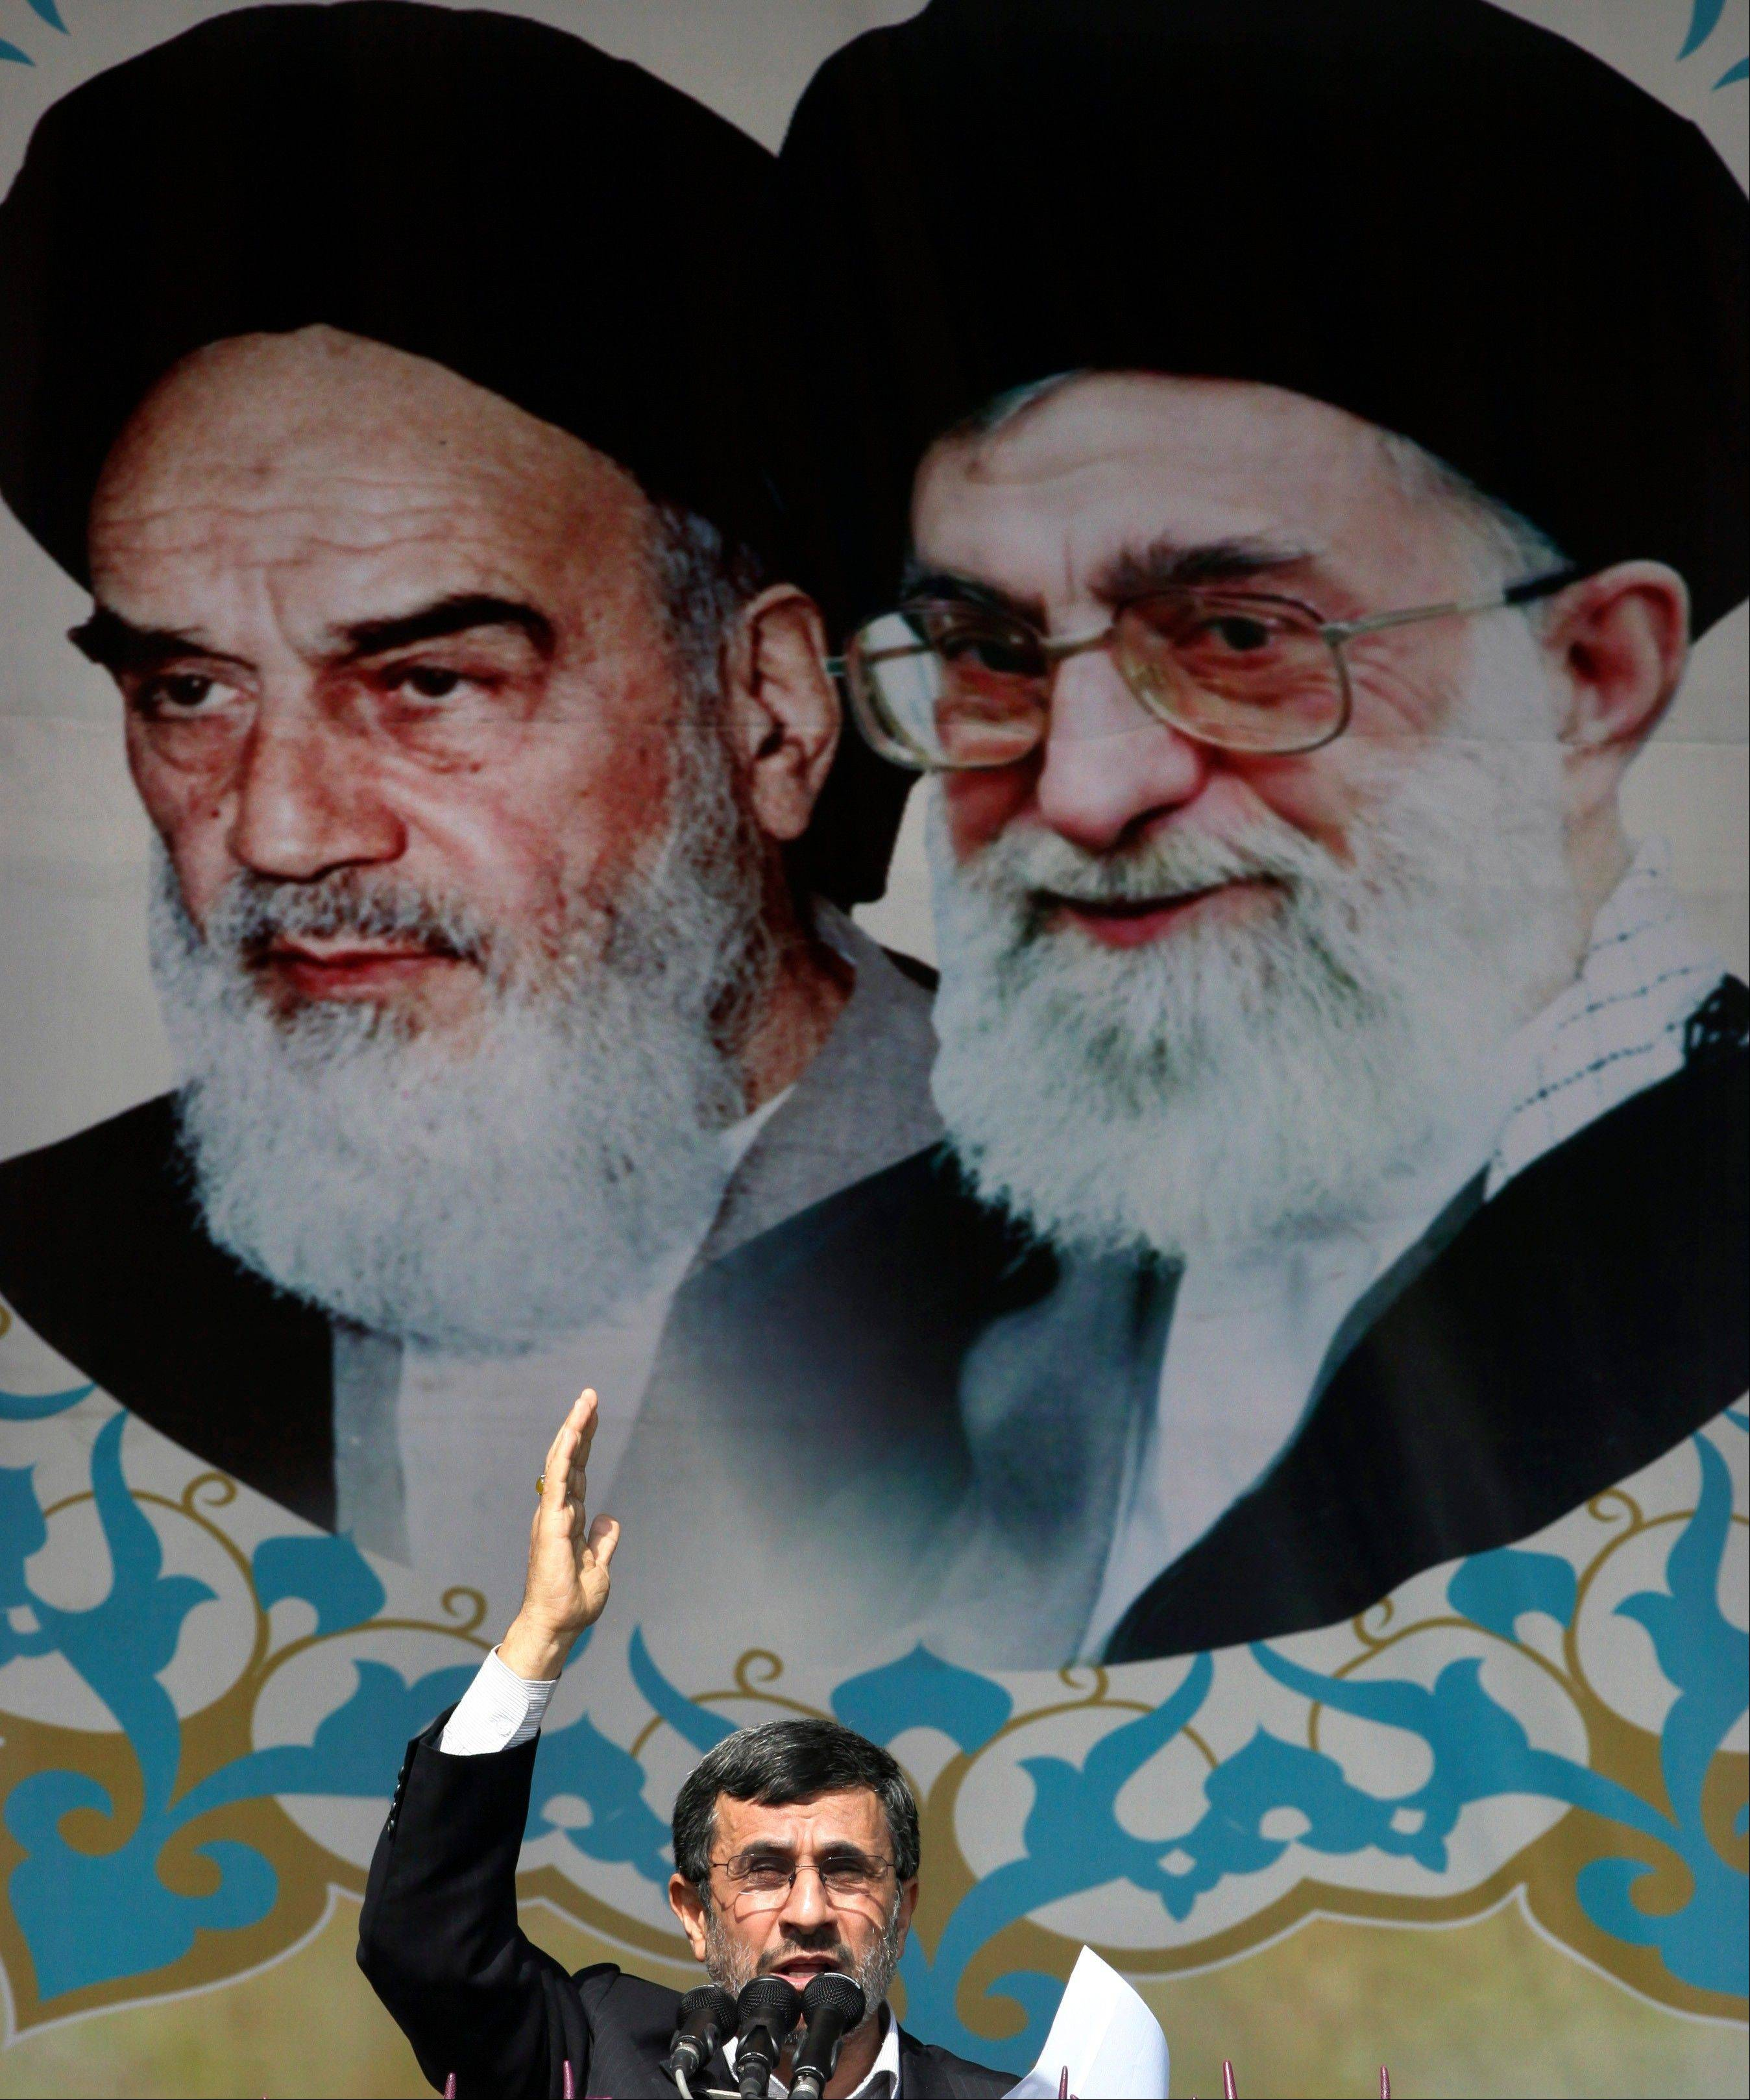 Iranian President Mahmoud Ahmadinejad speaks under portraits of the late Ayatollah Khomeini, left, and Supreme Leader Ayatollah Ali Khamenei on Sunday during an annual rally commemorating the anniversary of the 1979 Islamic Revolution.